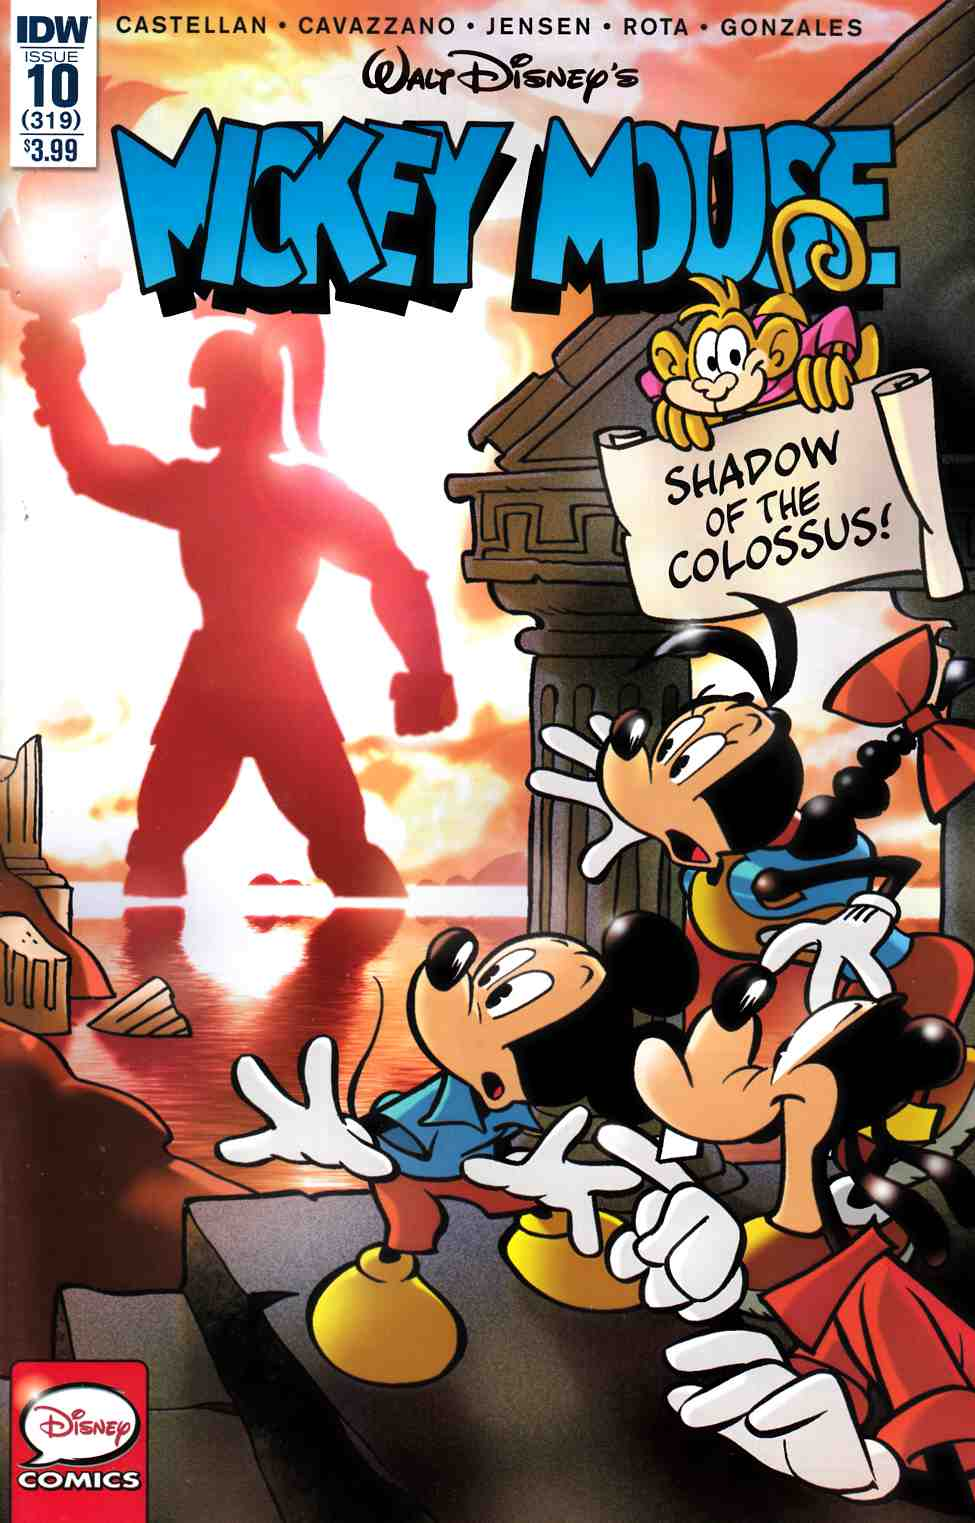 Mickey Mouse #10 [IDW Comic] THUMBNAIL